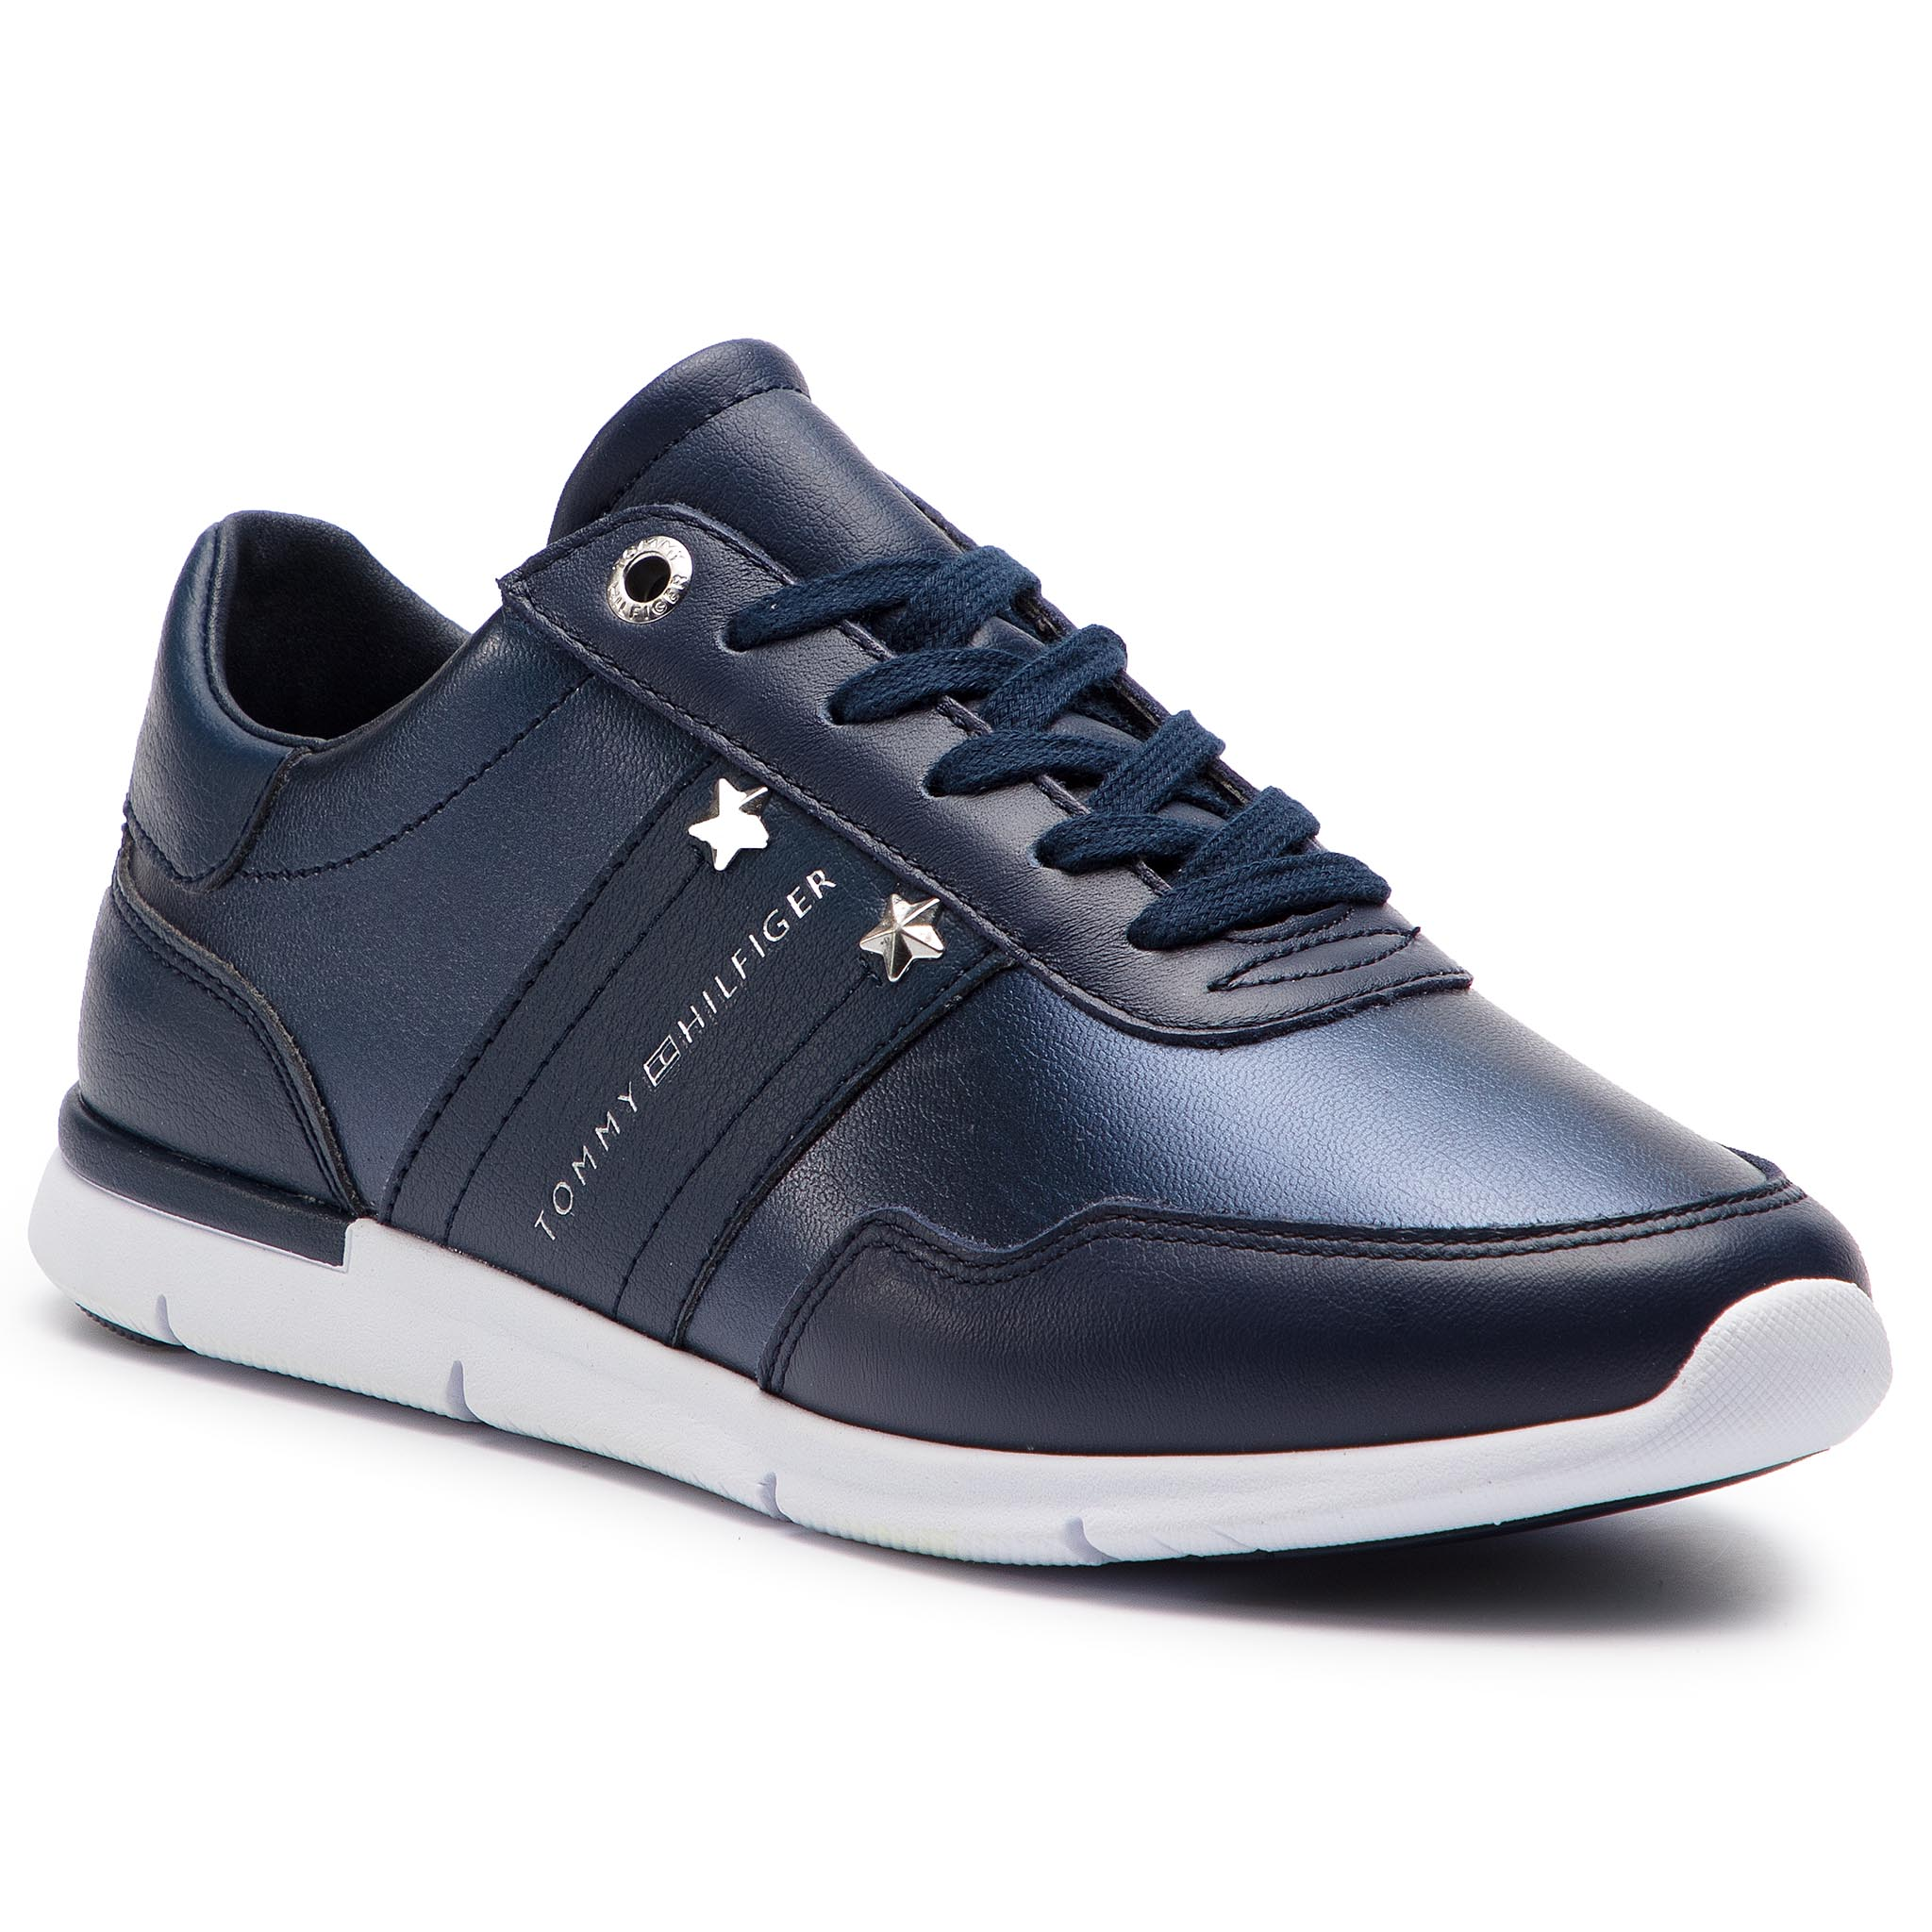 4303d1e30da54 Sneakers TOMMY HILFIGER Tommy Essential Leather Sneaker FW0FW03688 Tommy  Navy 406